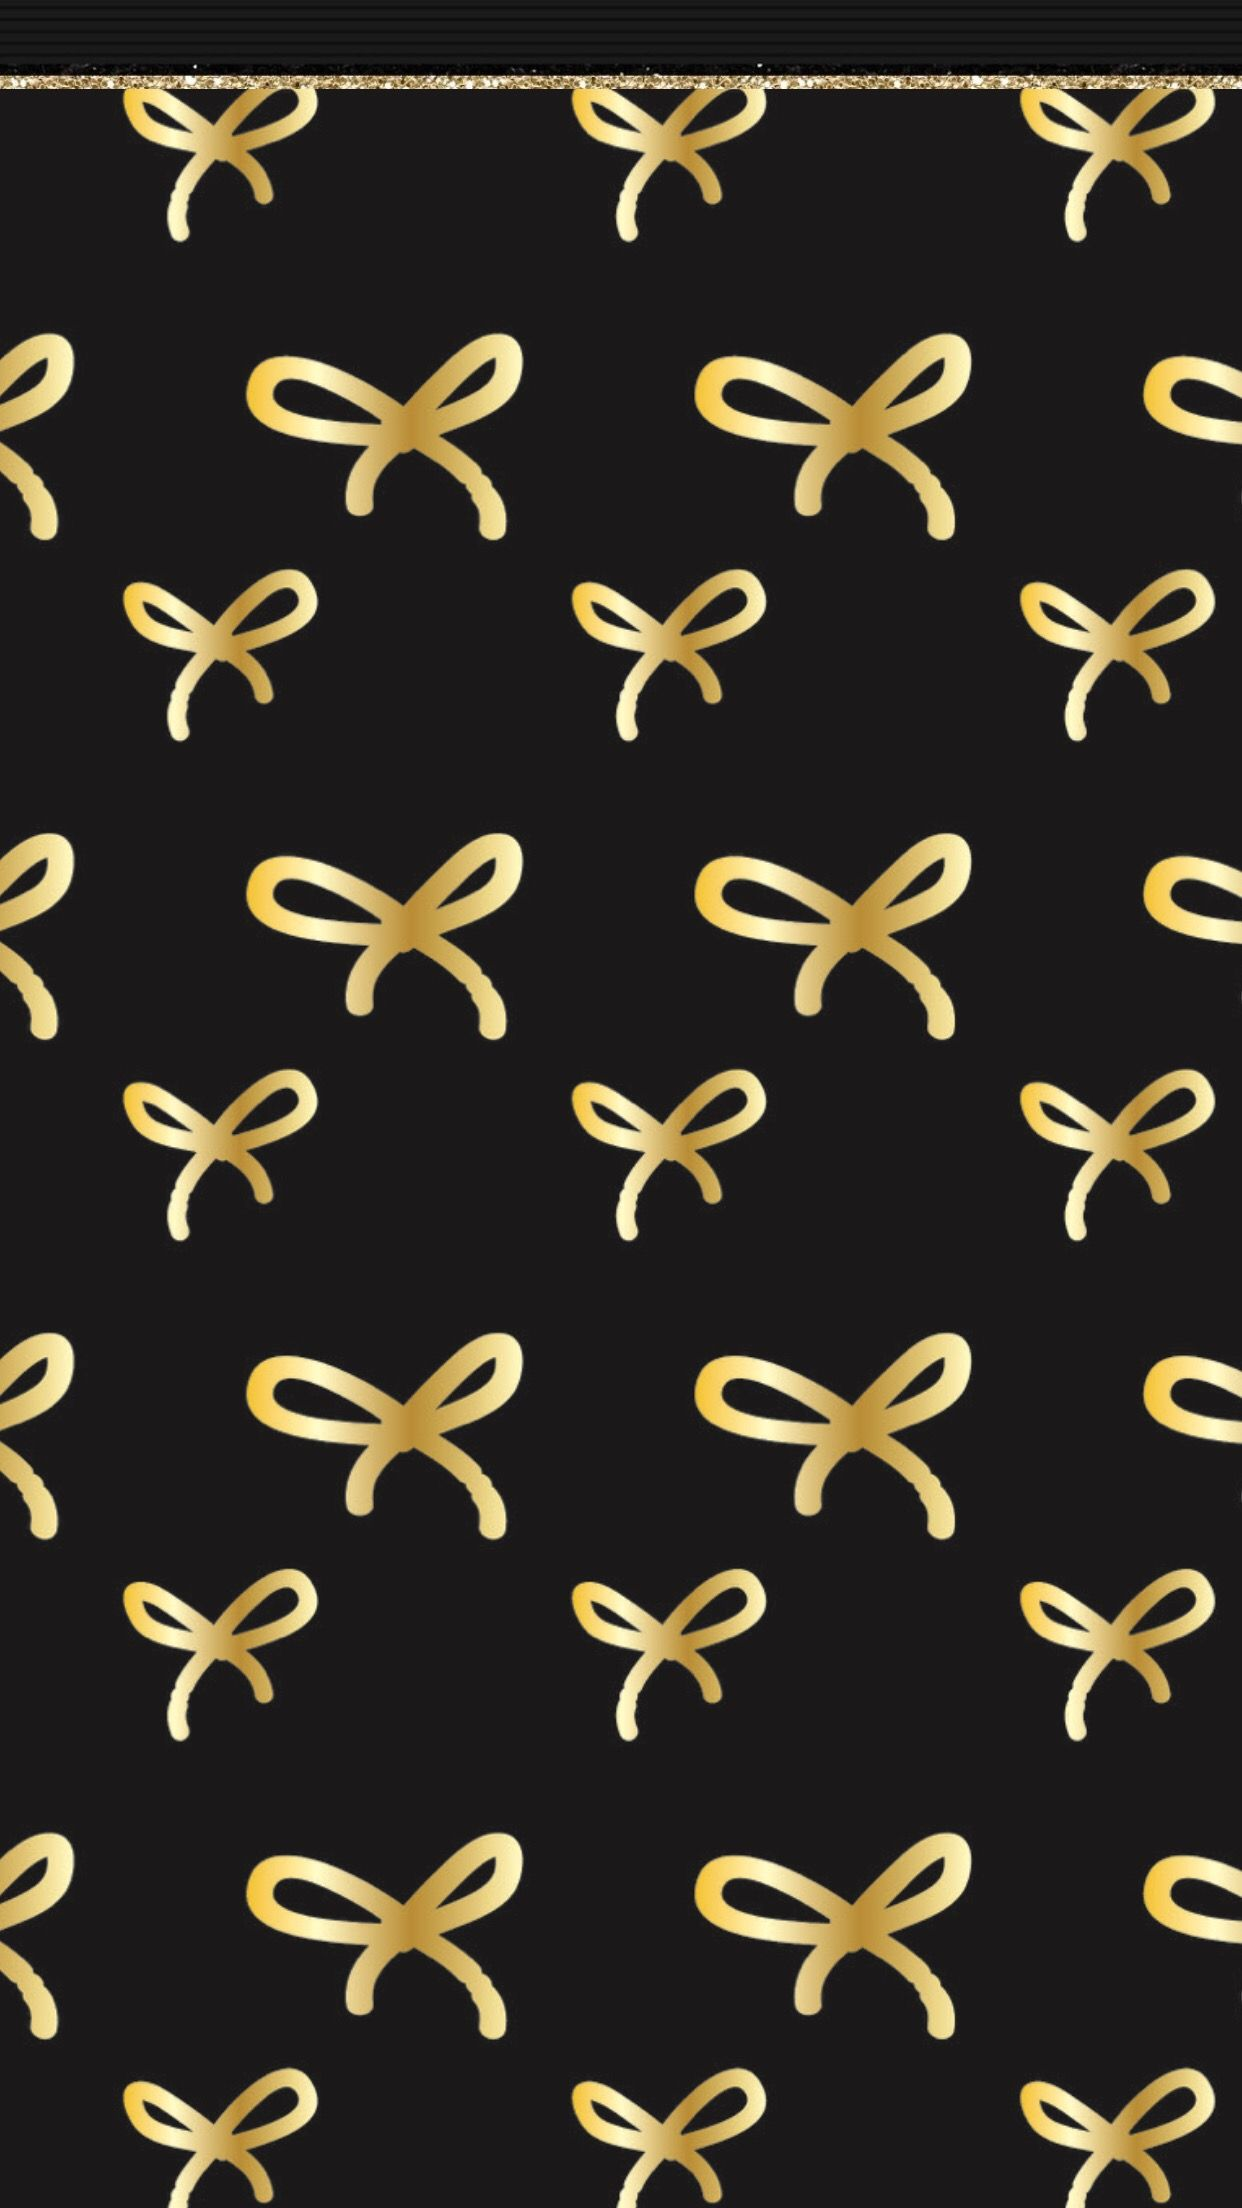 Black And Gold Christmas Wallpaper Iphone Tumblr Iphone Wallpaper Bow Wallpaper